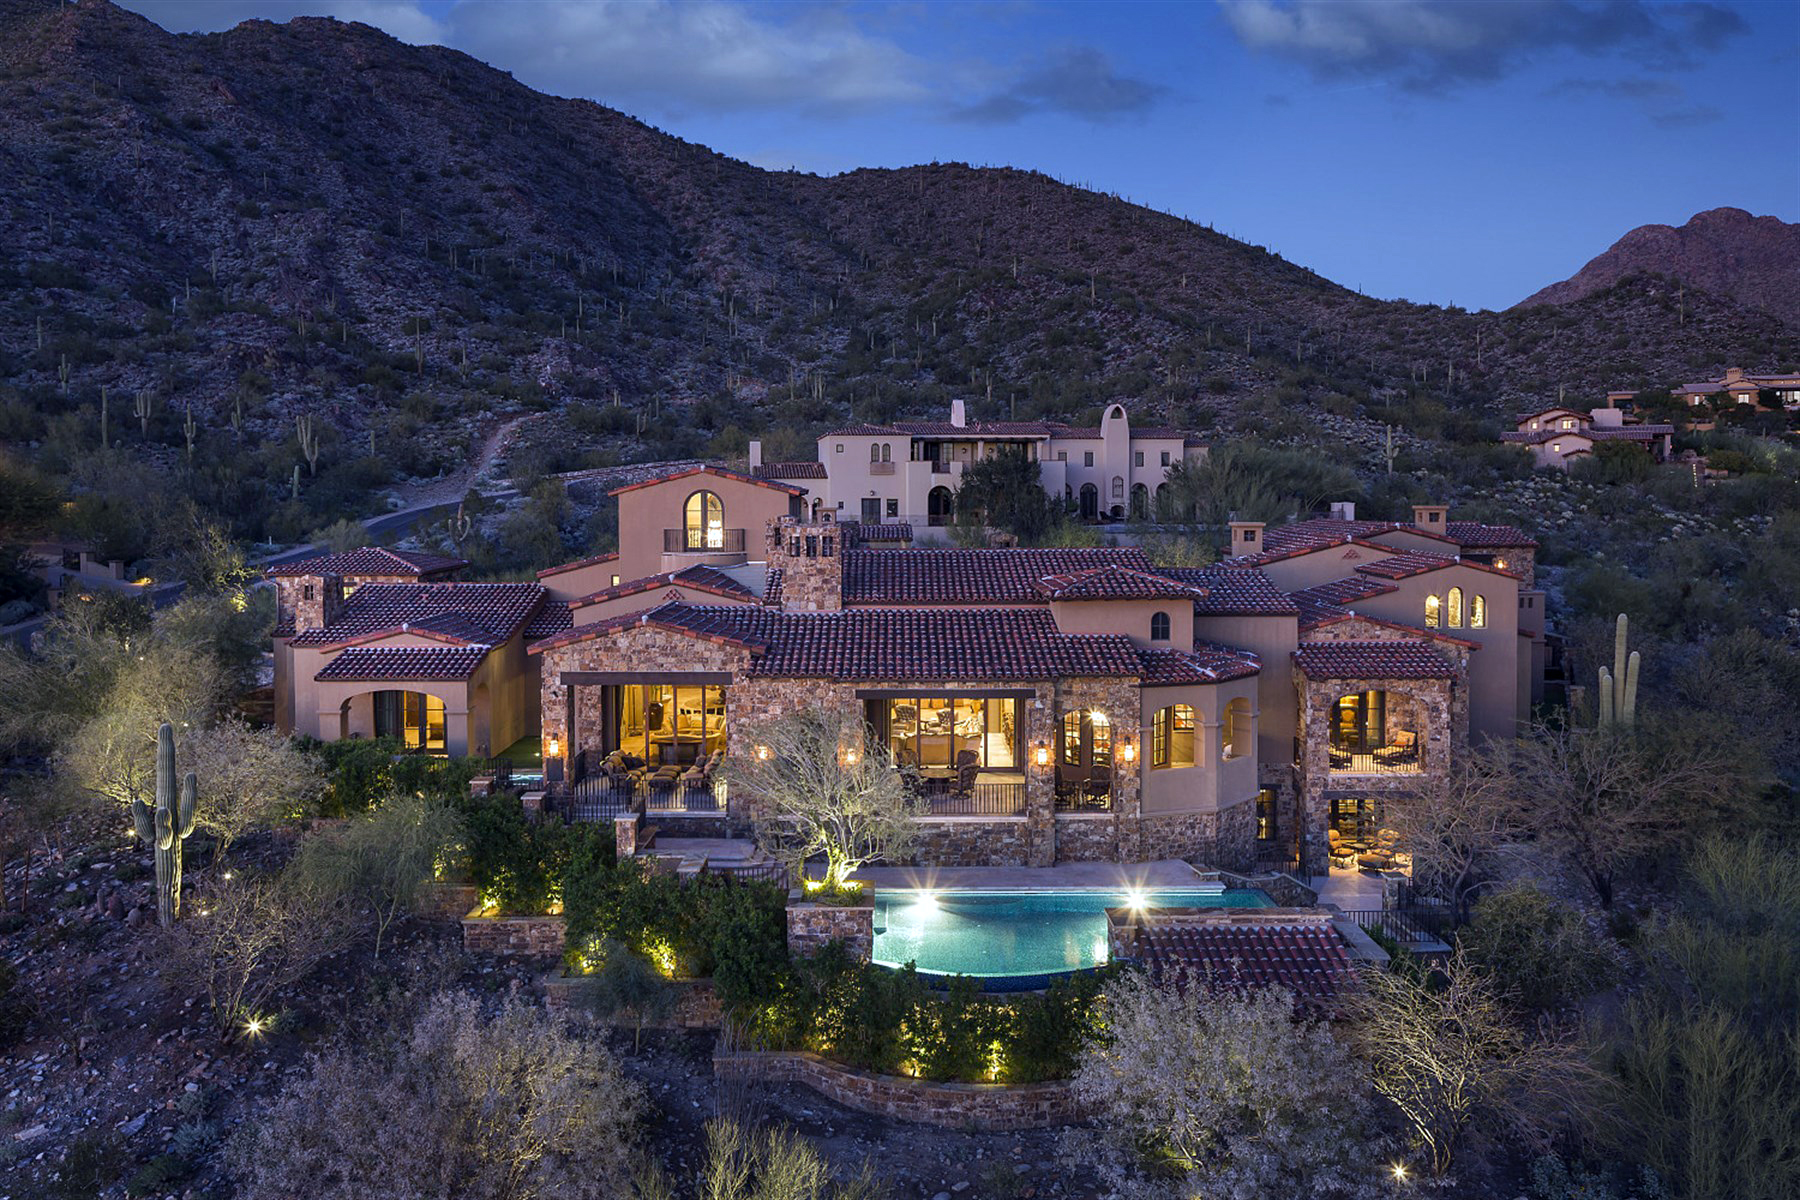 Property For Sale at Exquisite European Manor in The Exclusive Upper Canyon at Silverleaf